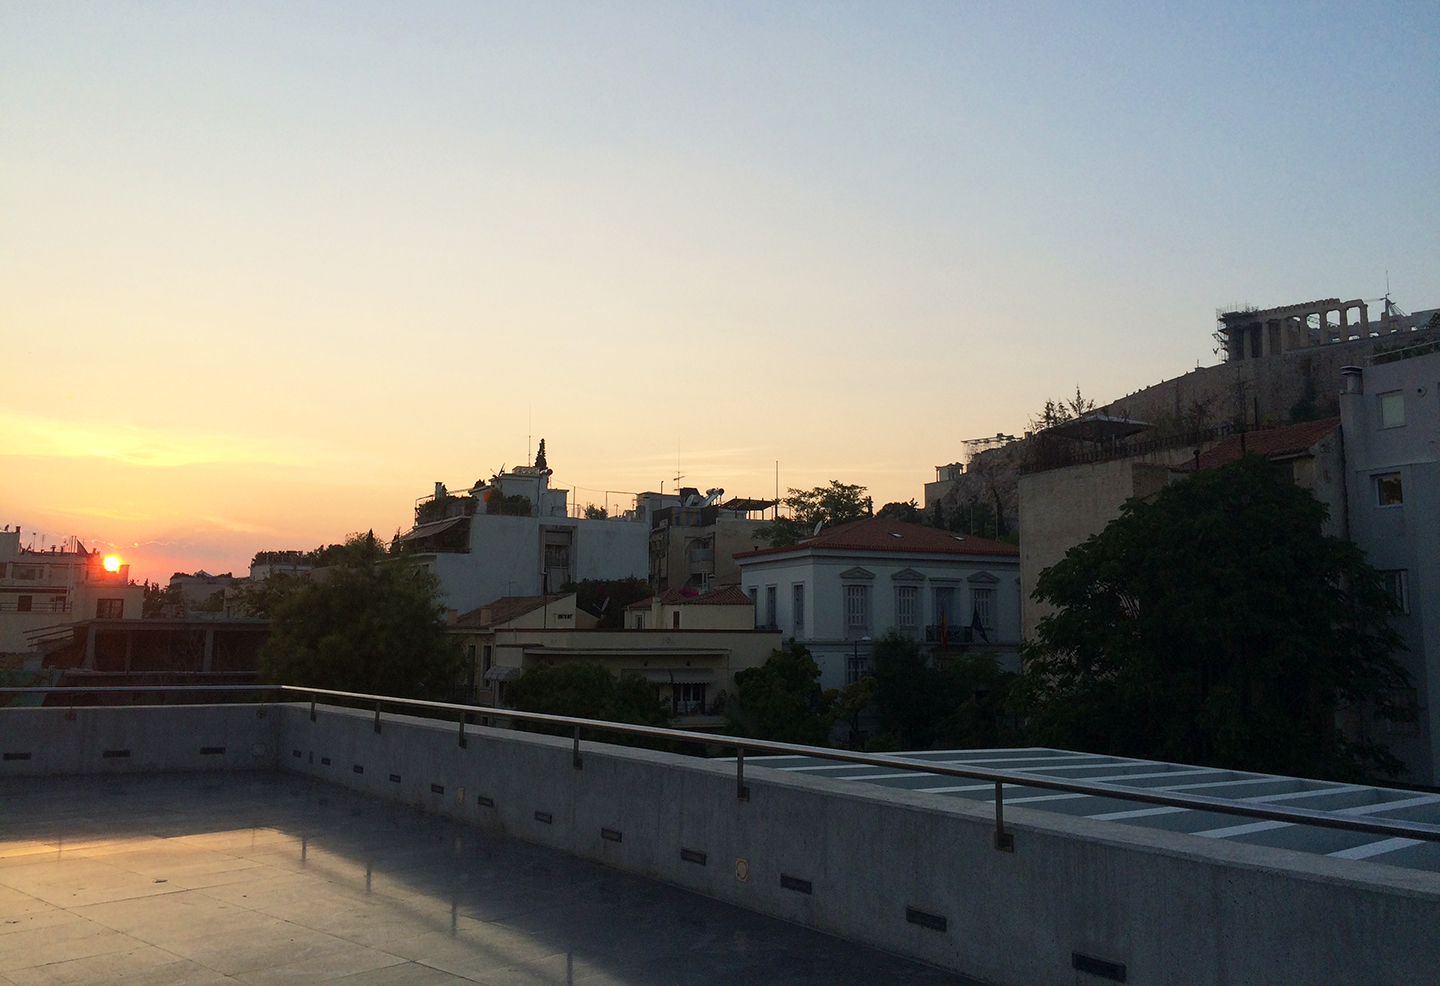 72 Top 5 Reasons to Visit the Acropolis Museum